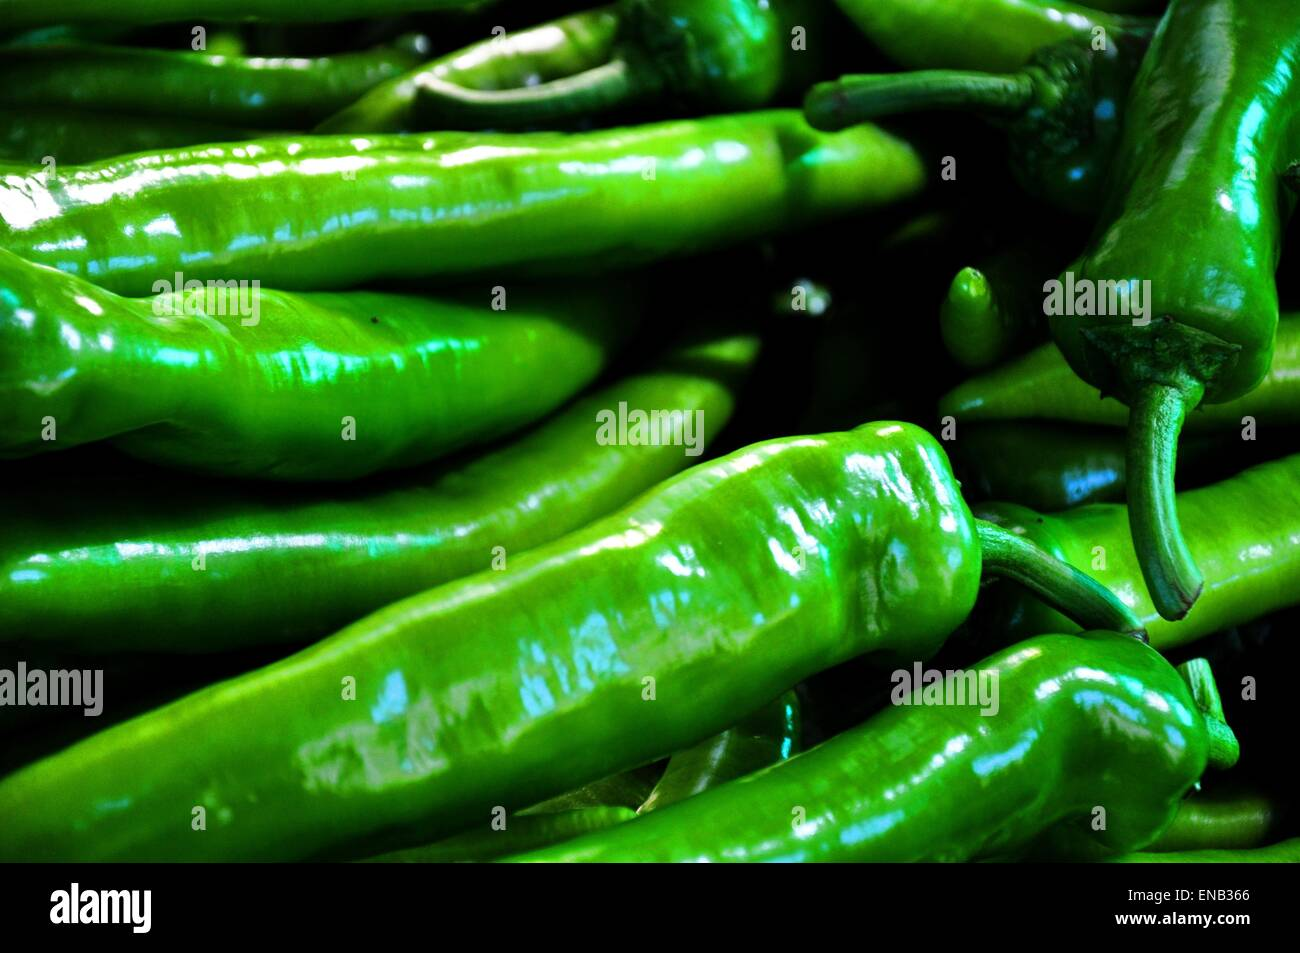 Green chili background - Stock Image